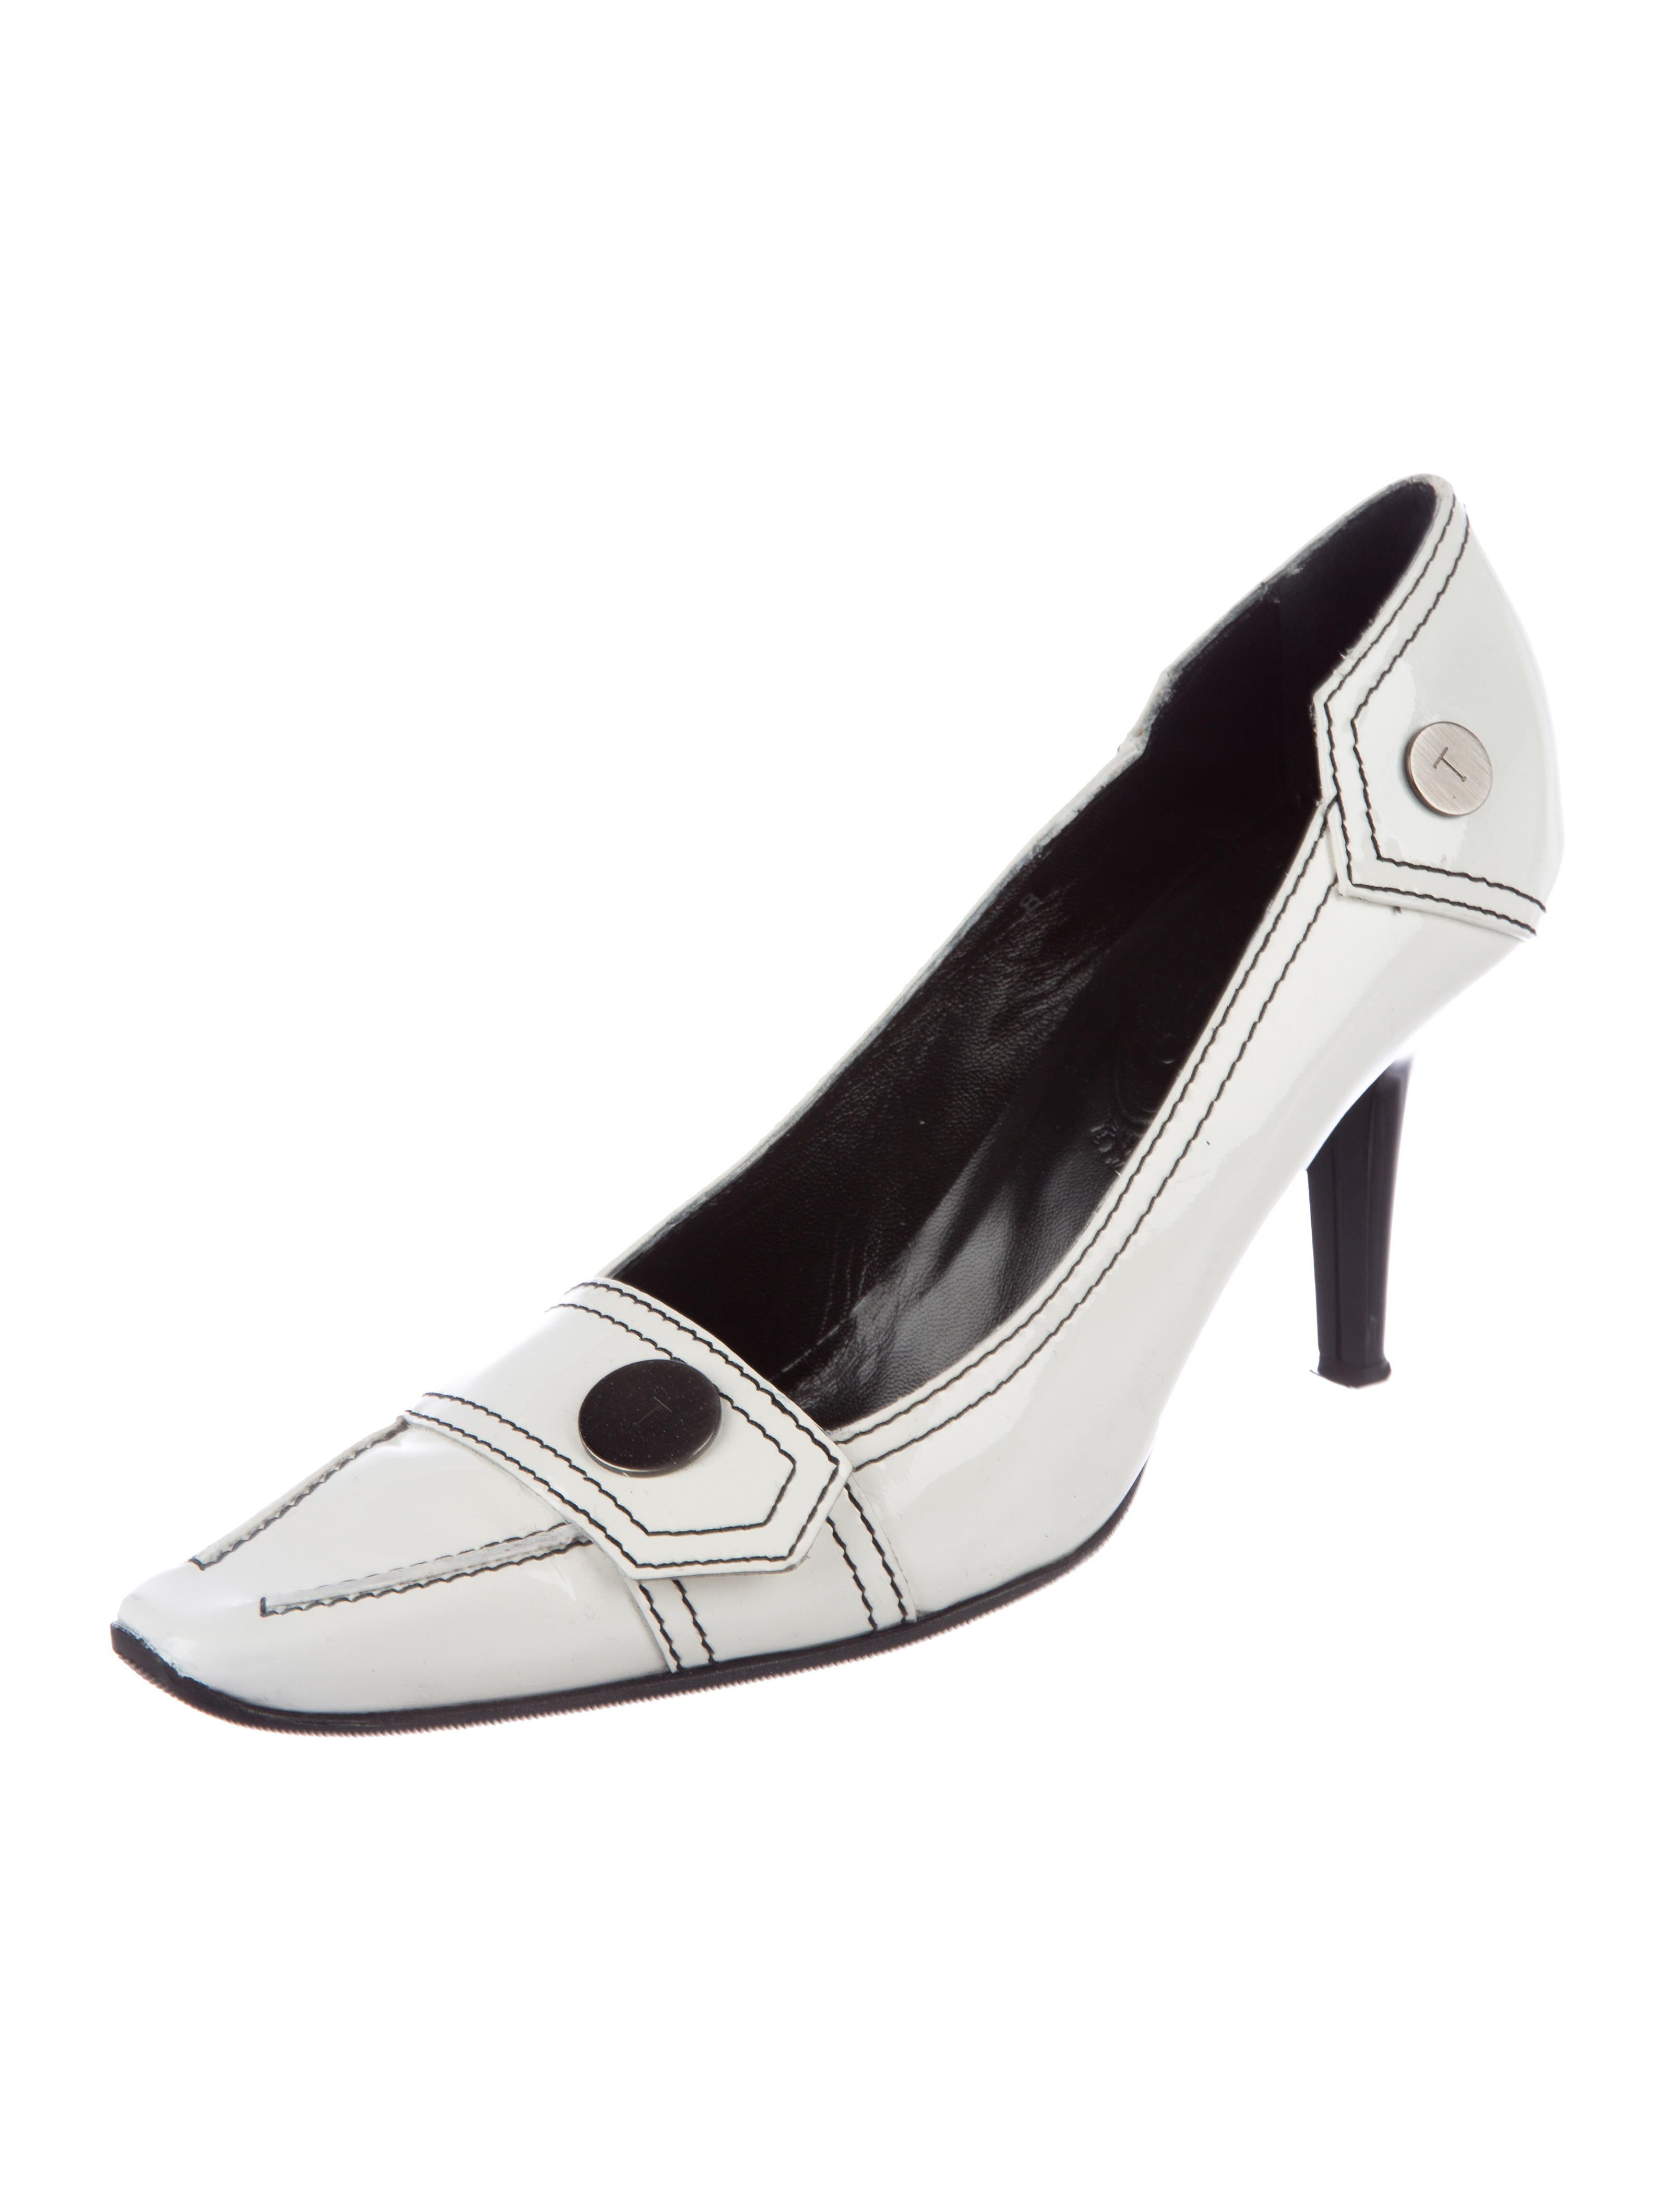 tumblr for sale footlocker pictures sale online Tod's Patent Pointed-Toe Pumps cheap with paypal discount professional best prices sale online 6hZLZfEobU